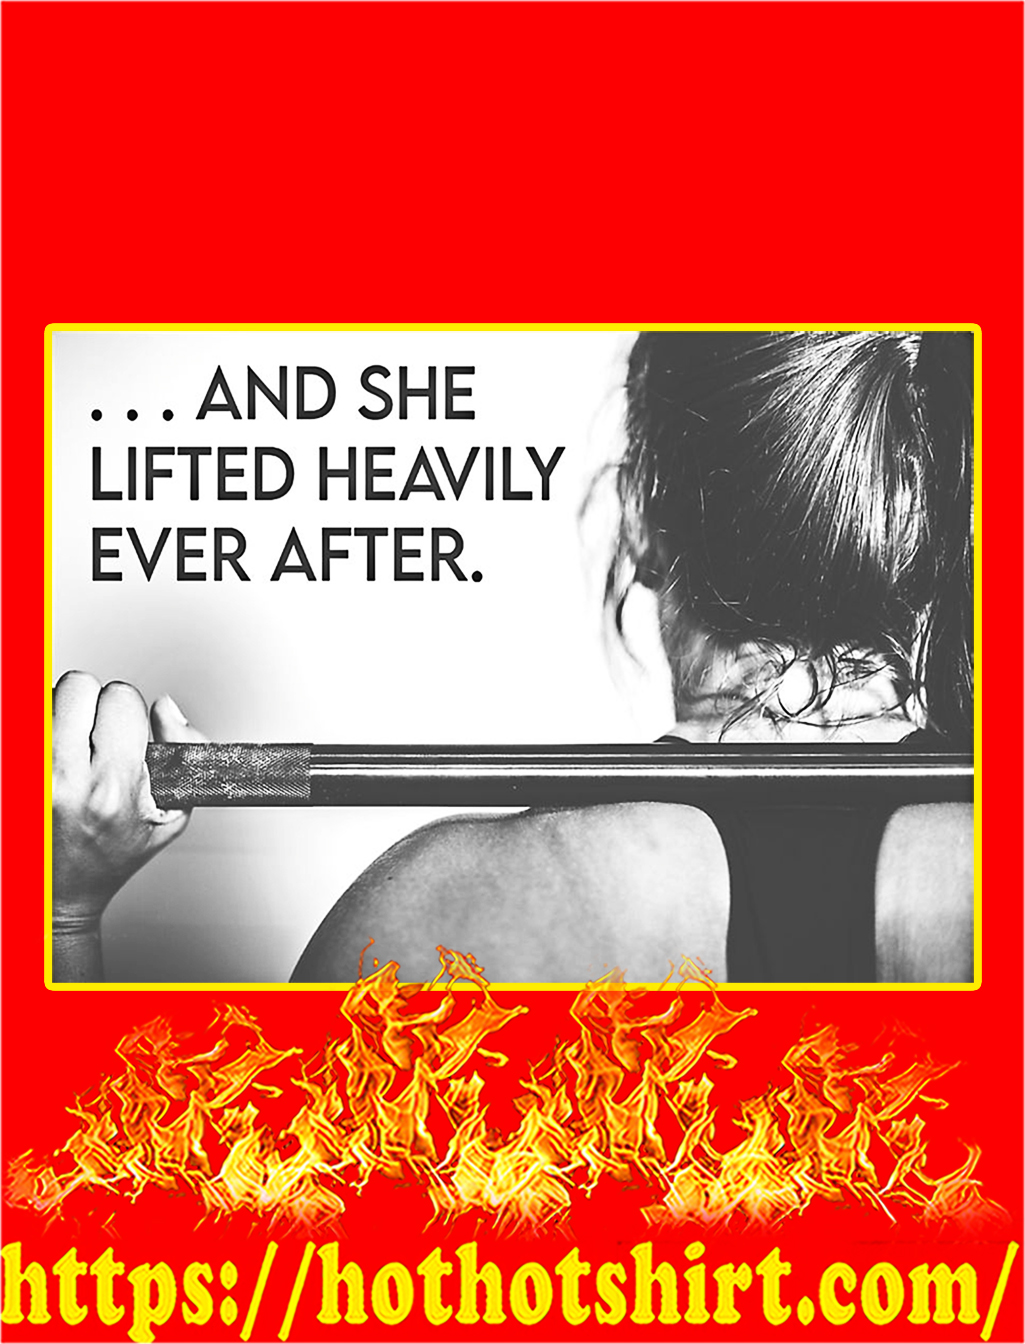 And she lifted heavily ever after fitness poster - A3